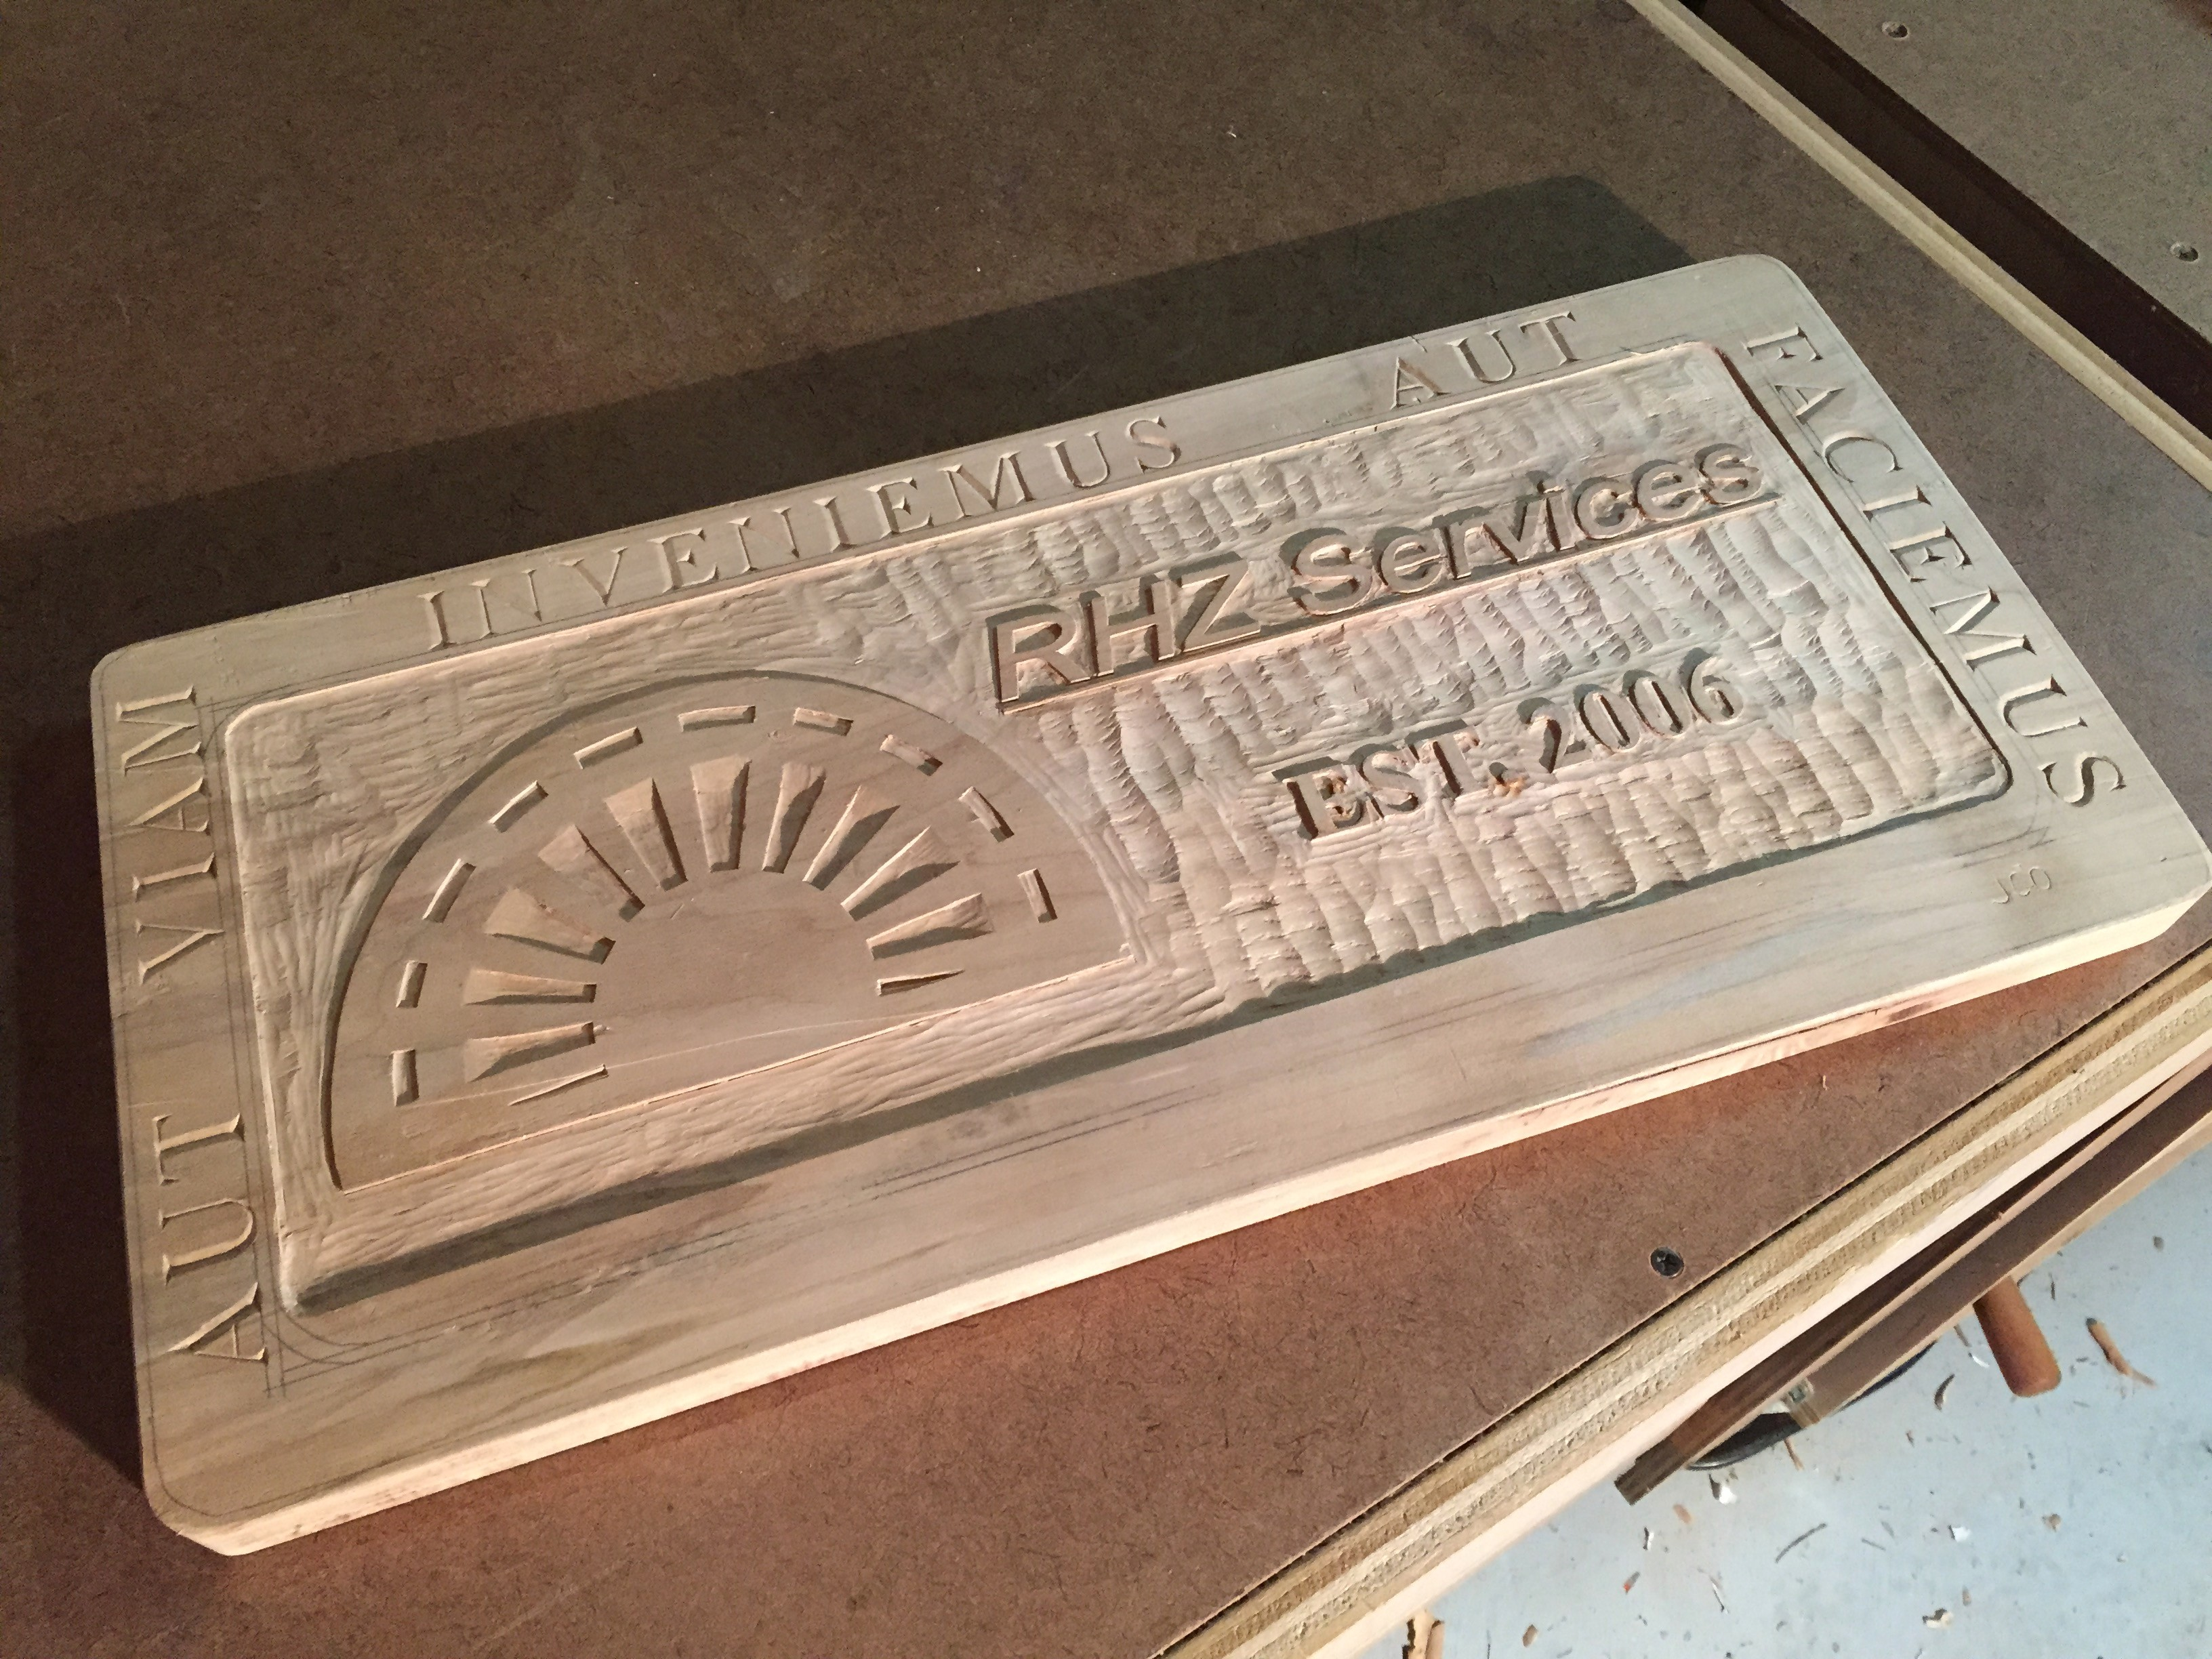 Completed RHZ Plaque in silver maple (soft maple), unfinished